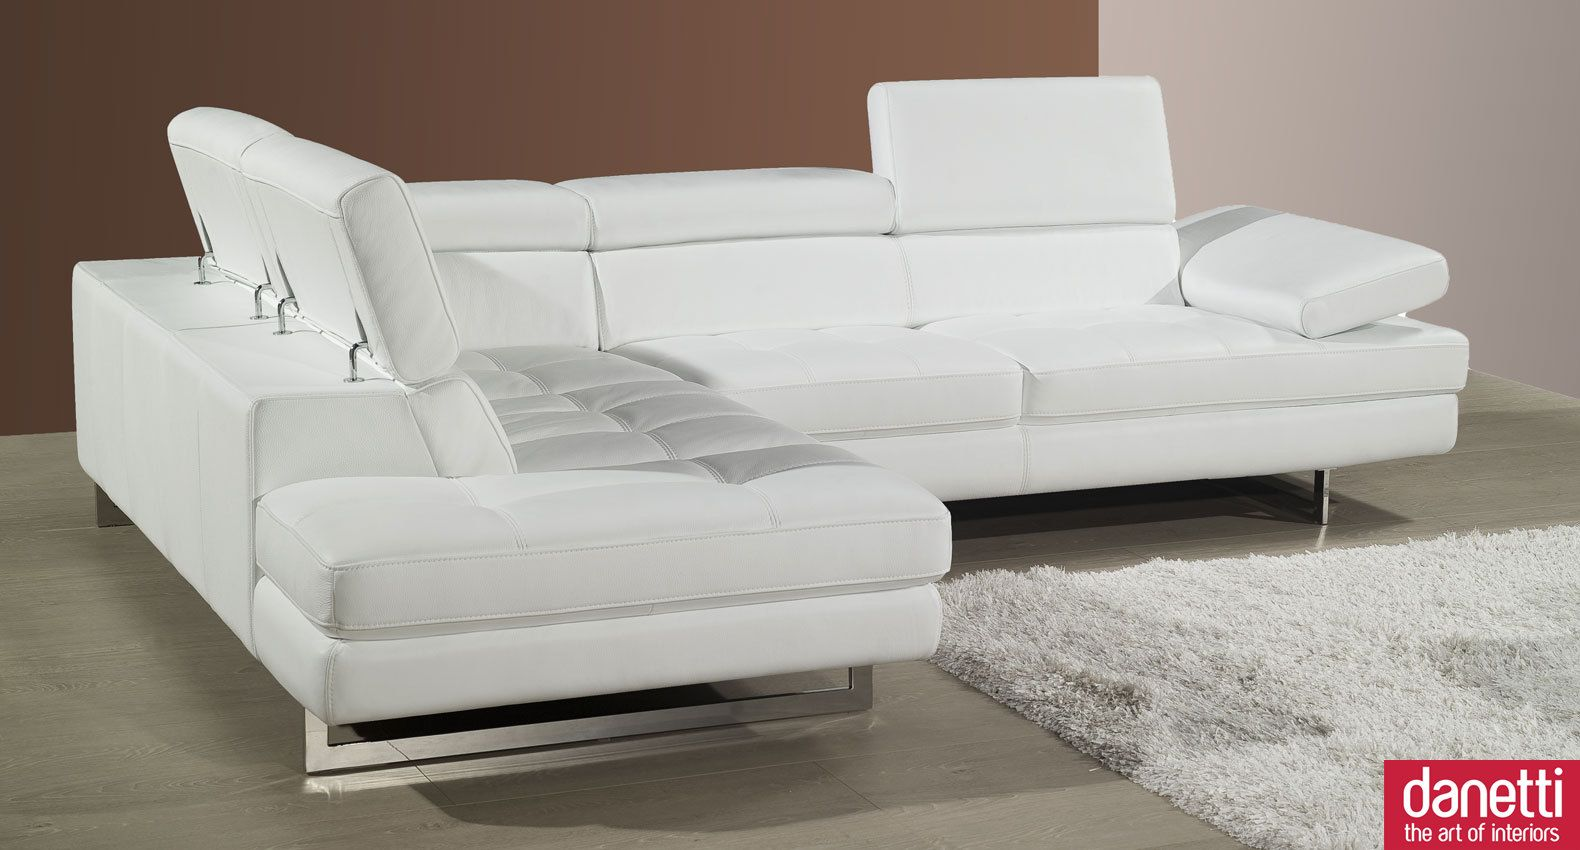 Superbe Modern White Leather CouchImage Gallery | Image Gallery